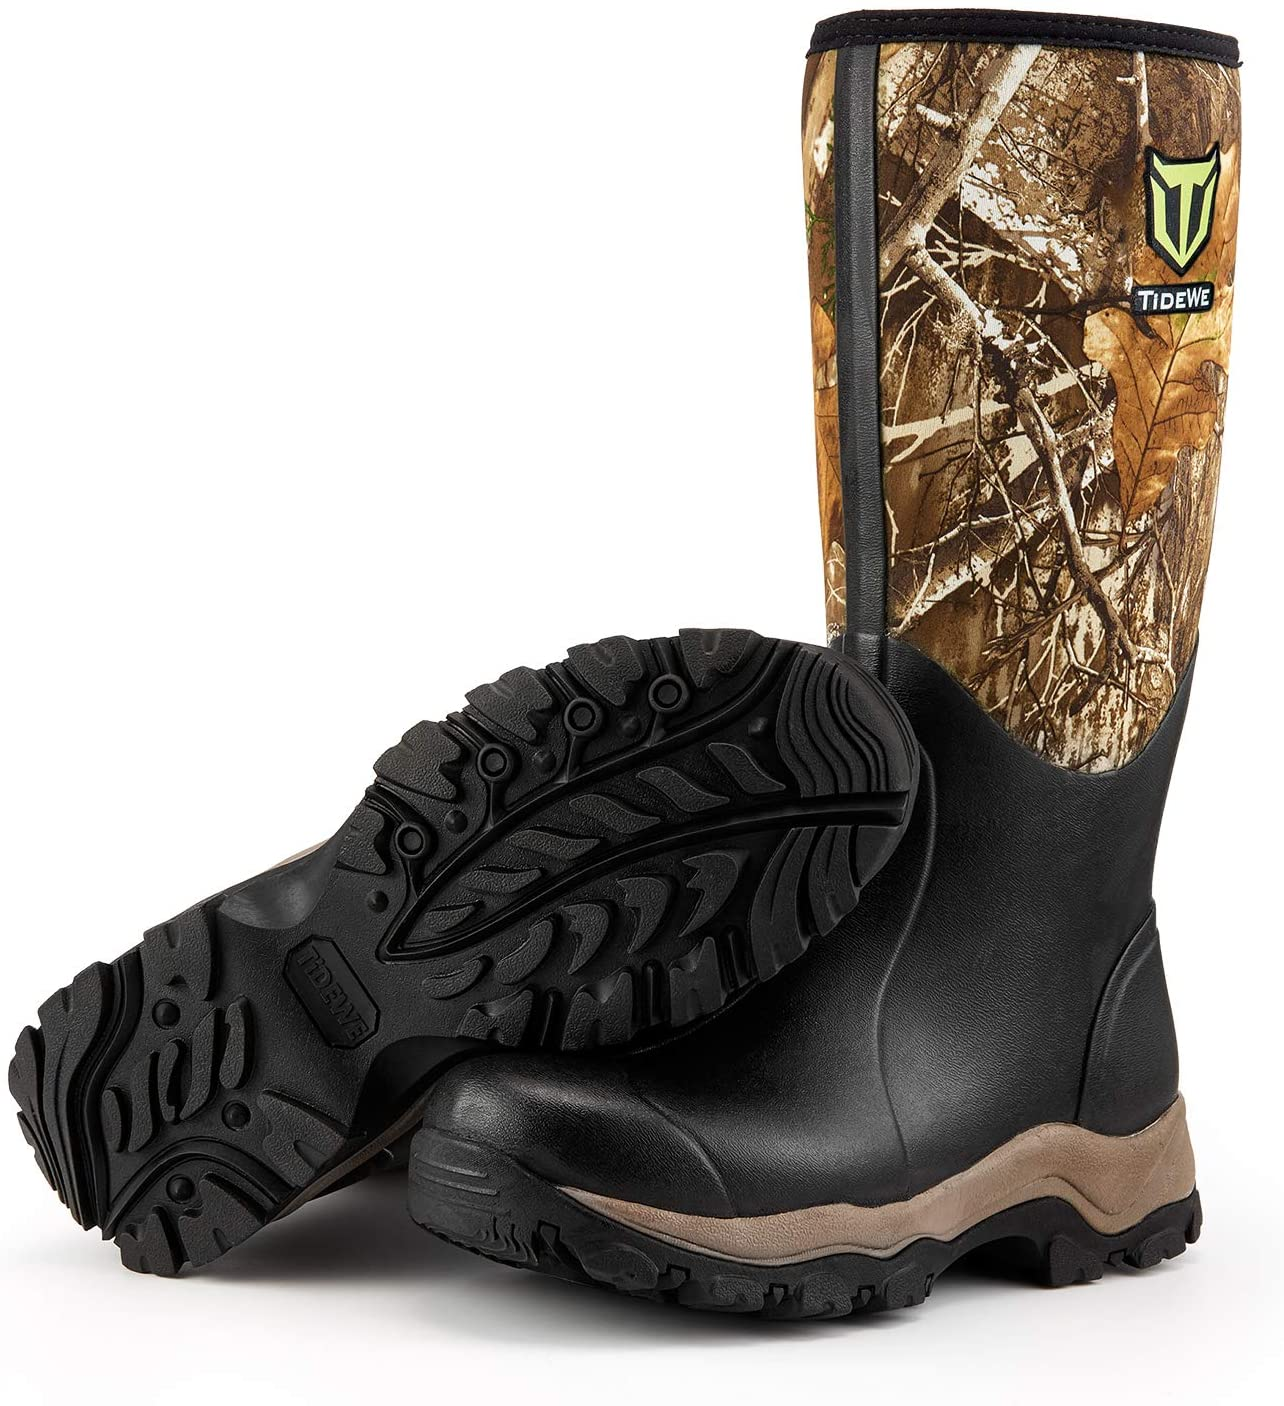 TideWe-insulated-Hunting-Boots